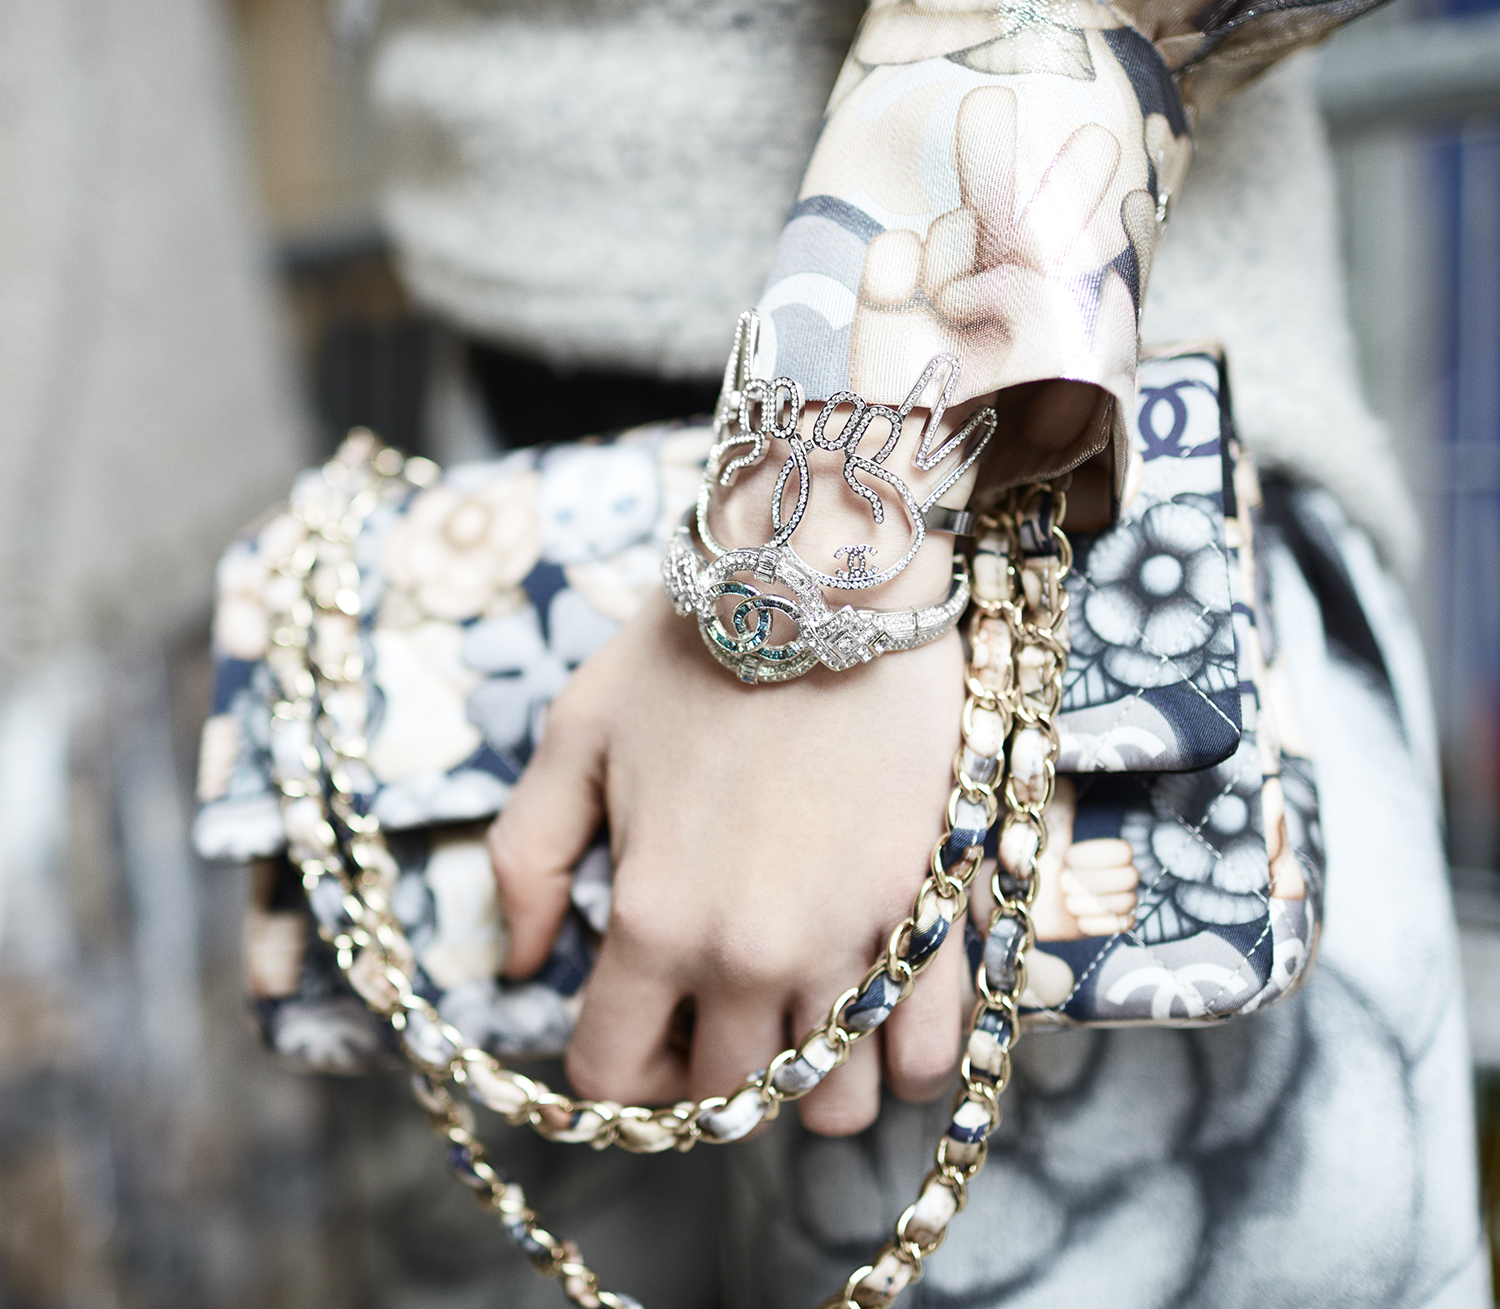 25_backstage-close-up-accessories-by-stcphane-gallois_ld